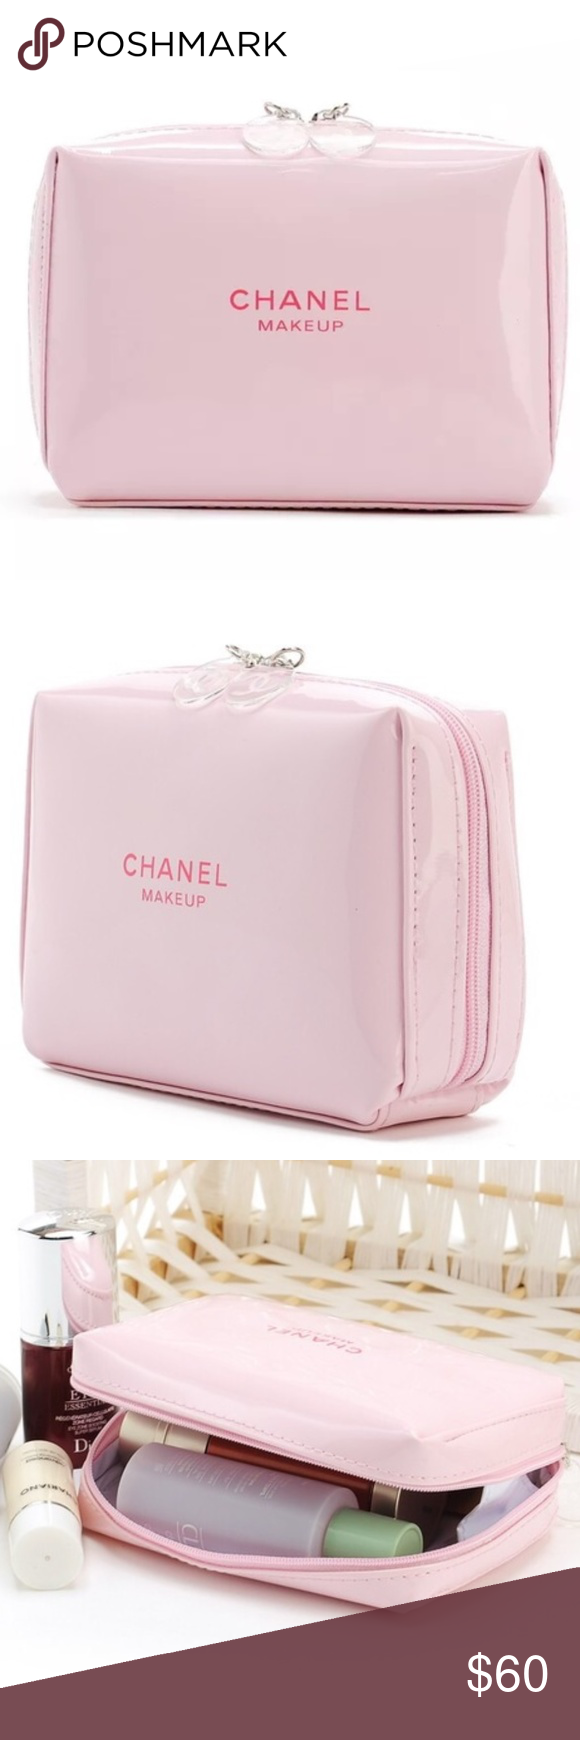 NEW CHANEL Pink Patent Leather Makeup Pouch Bag LAST ONE